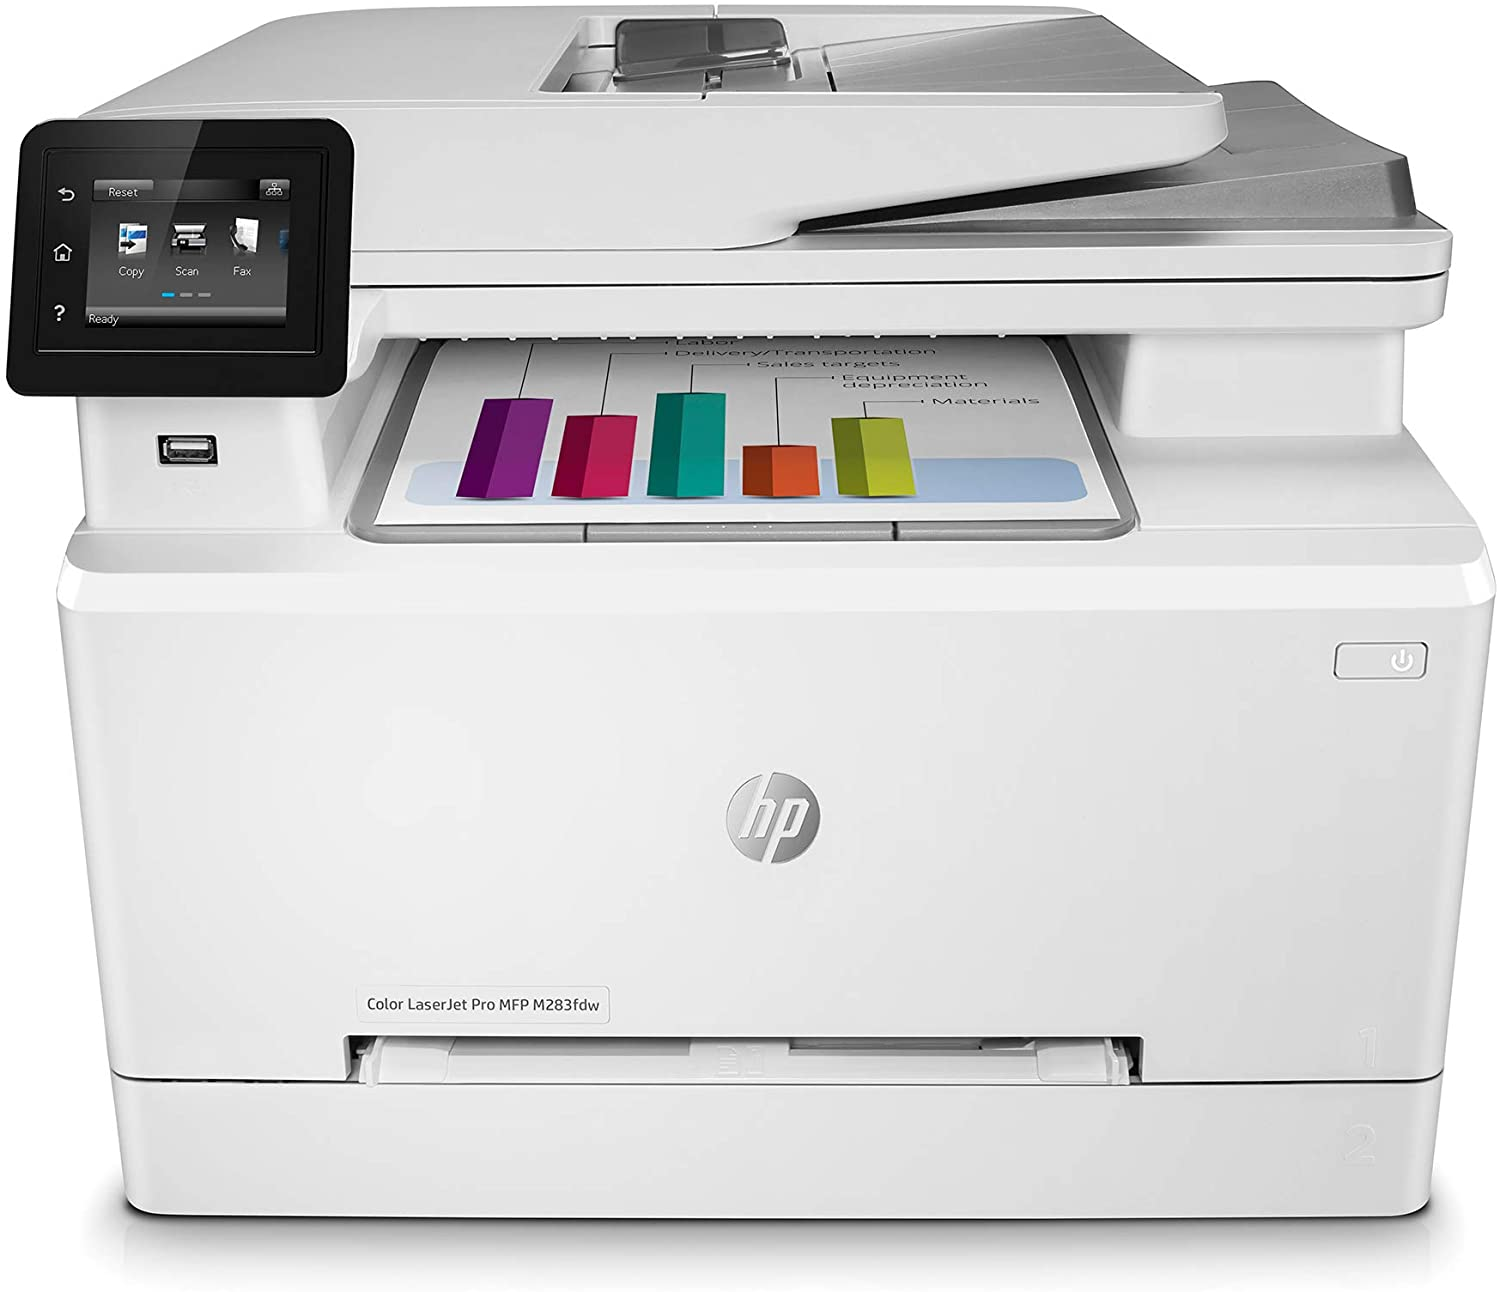 HP Colour LaserJet Pro M283fdw Multi-Function Printer, BEST ALL IN ONE PRINTER uk reviews